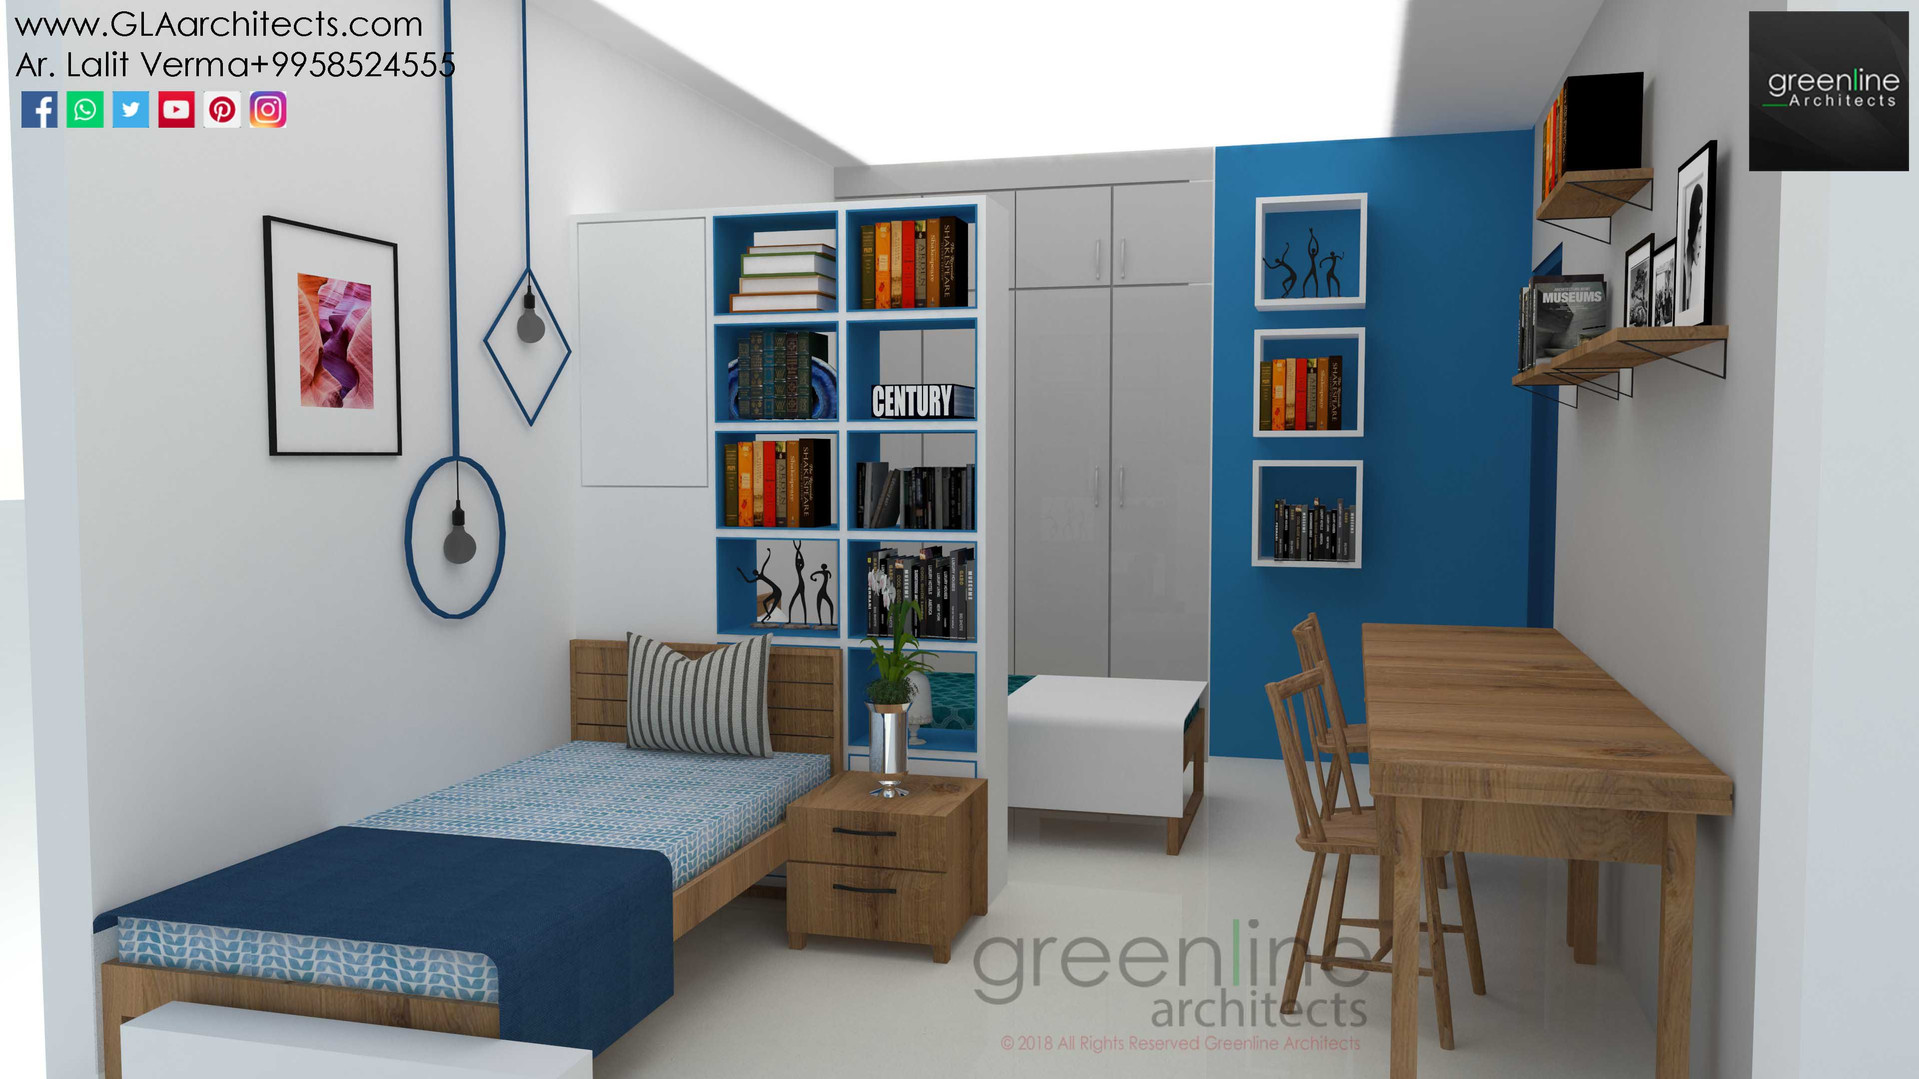 Livork_Hostel_Room_Interior_Design (2).j